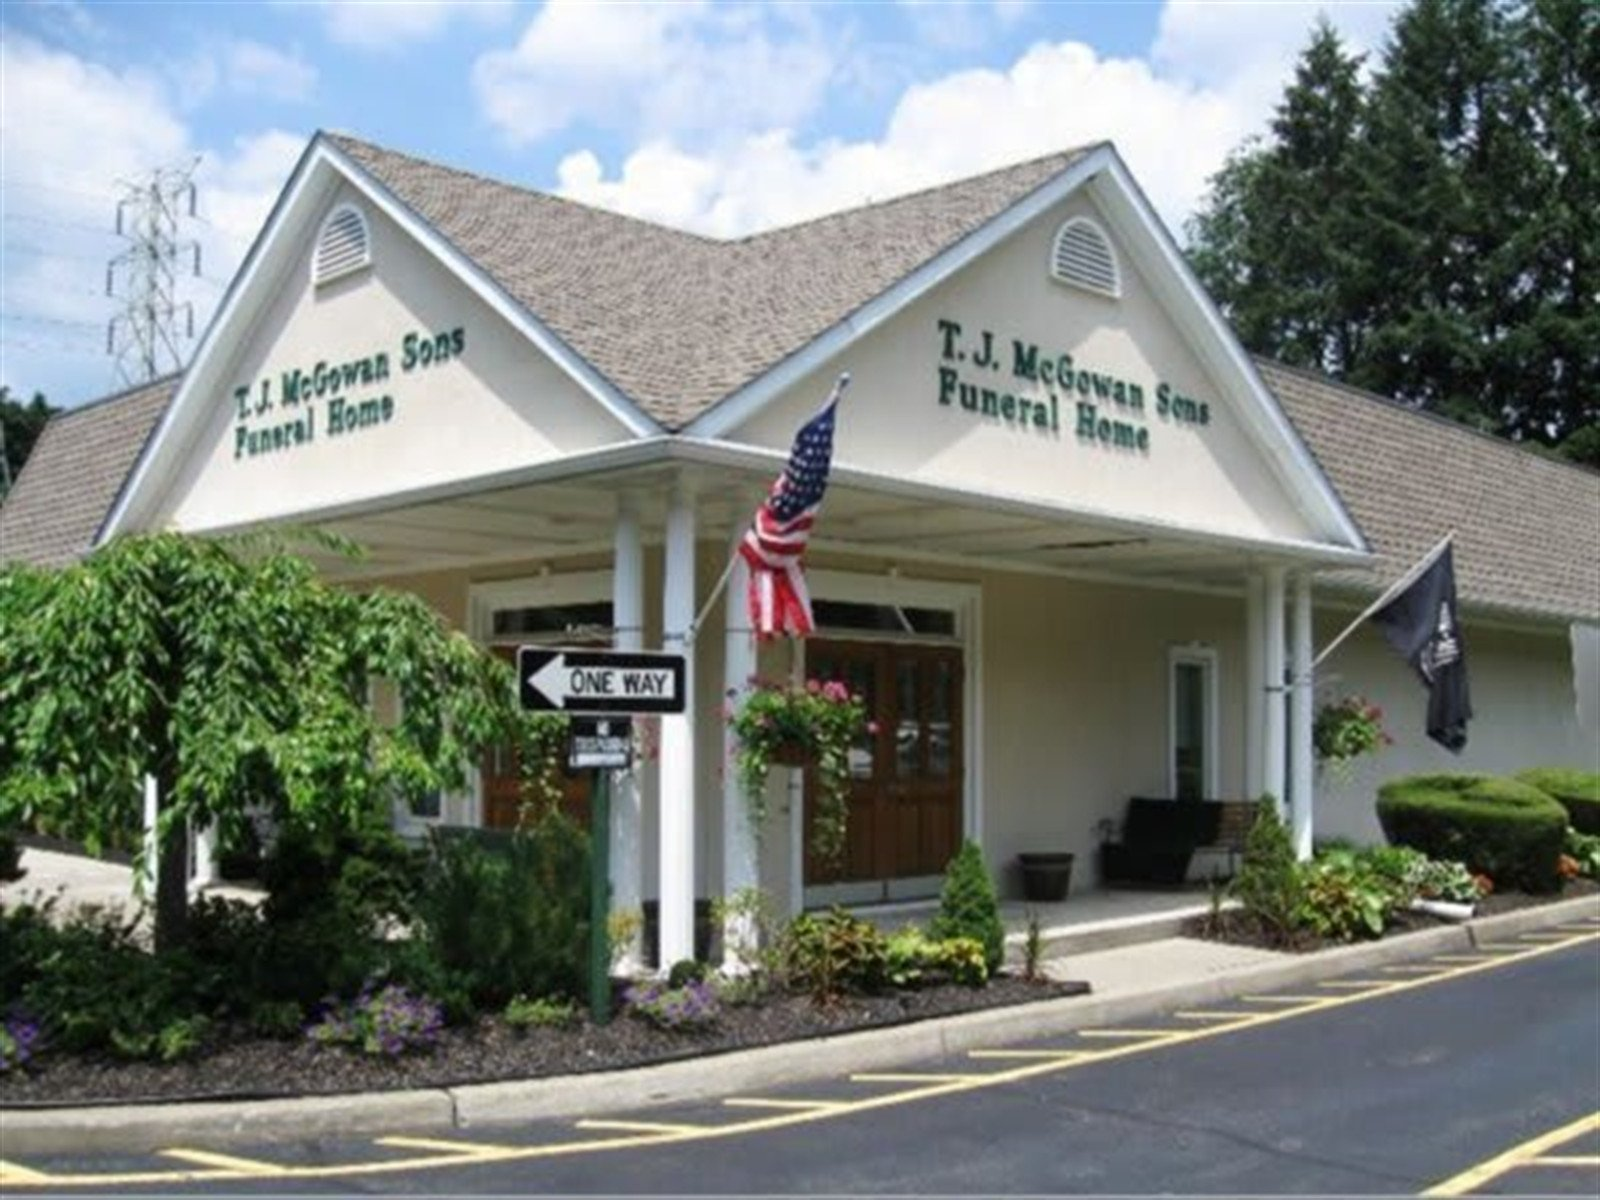 T J McGowan Sons Funeral Home Cremation Services Haverstraw NY